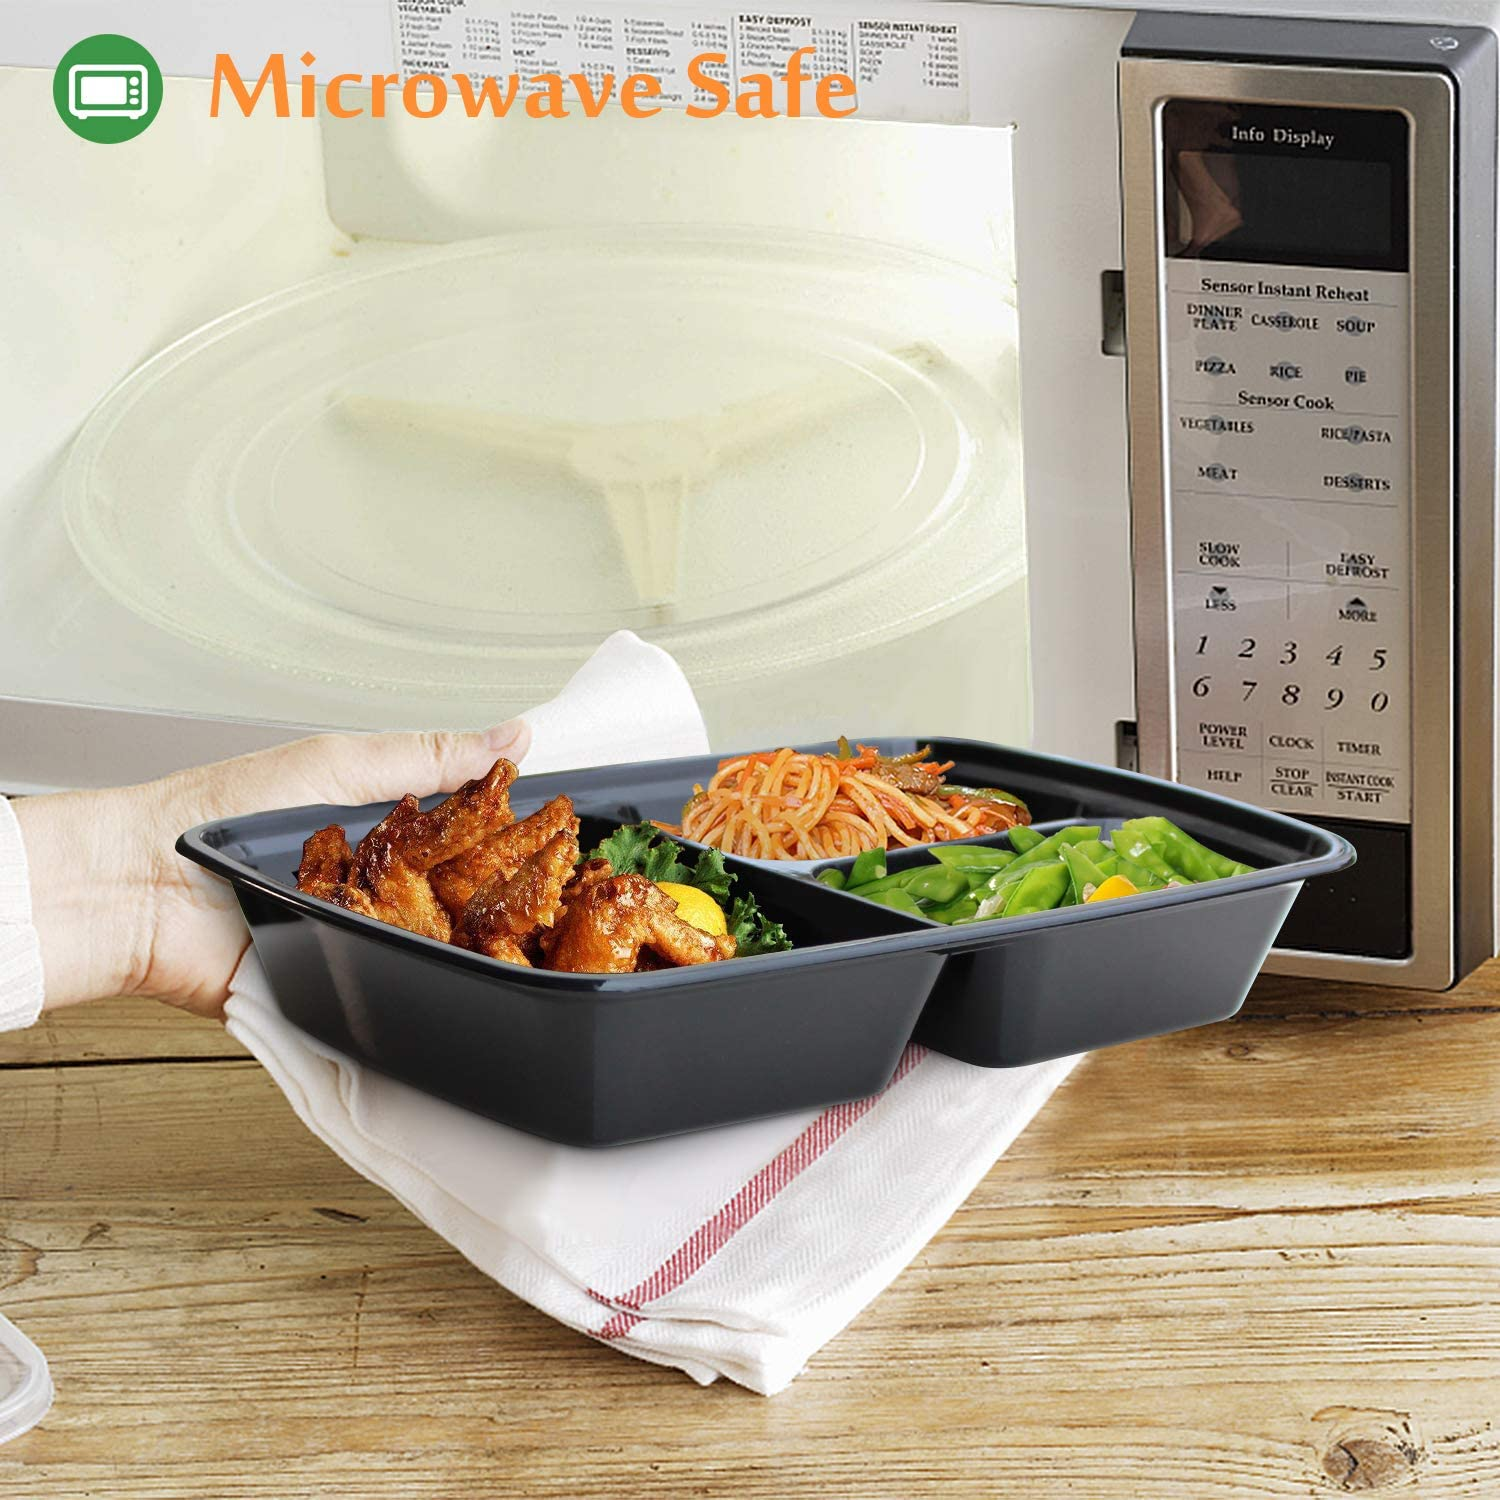 Are your microwave containers safe